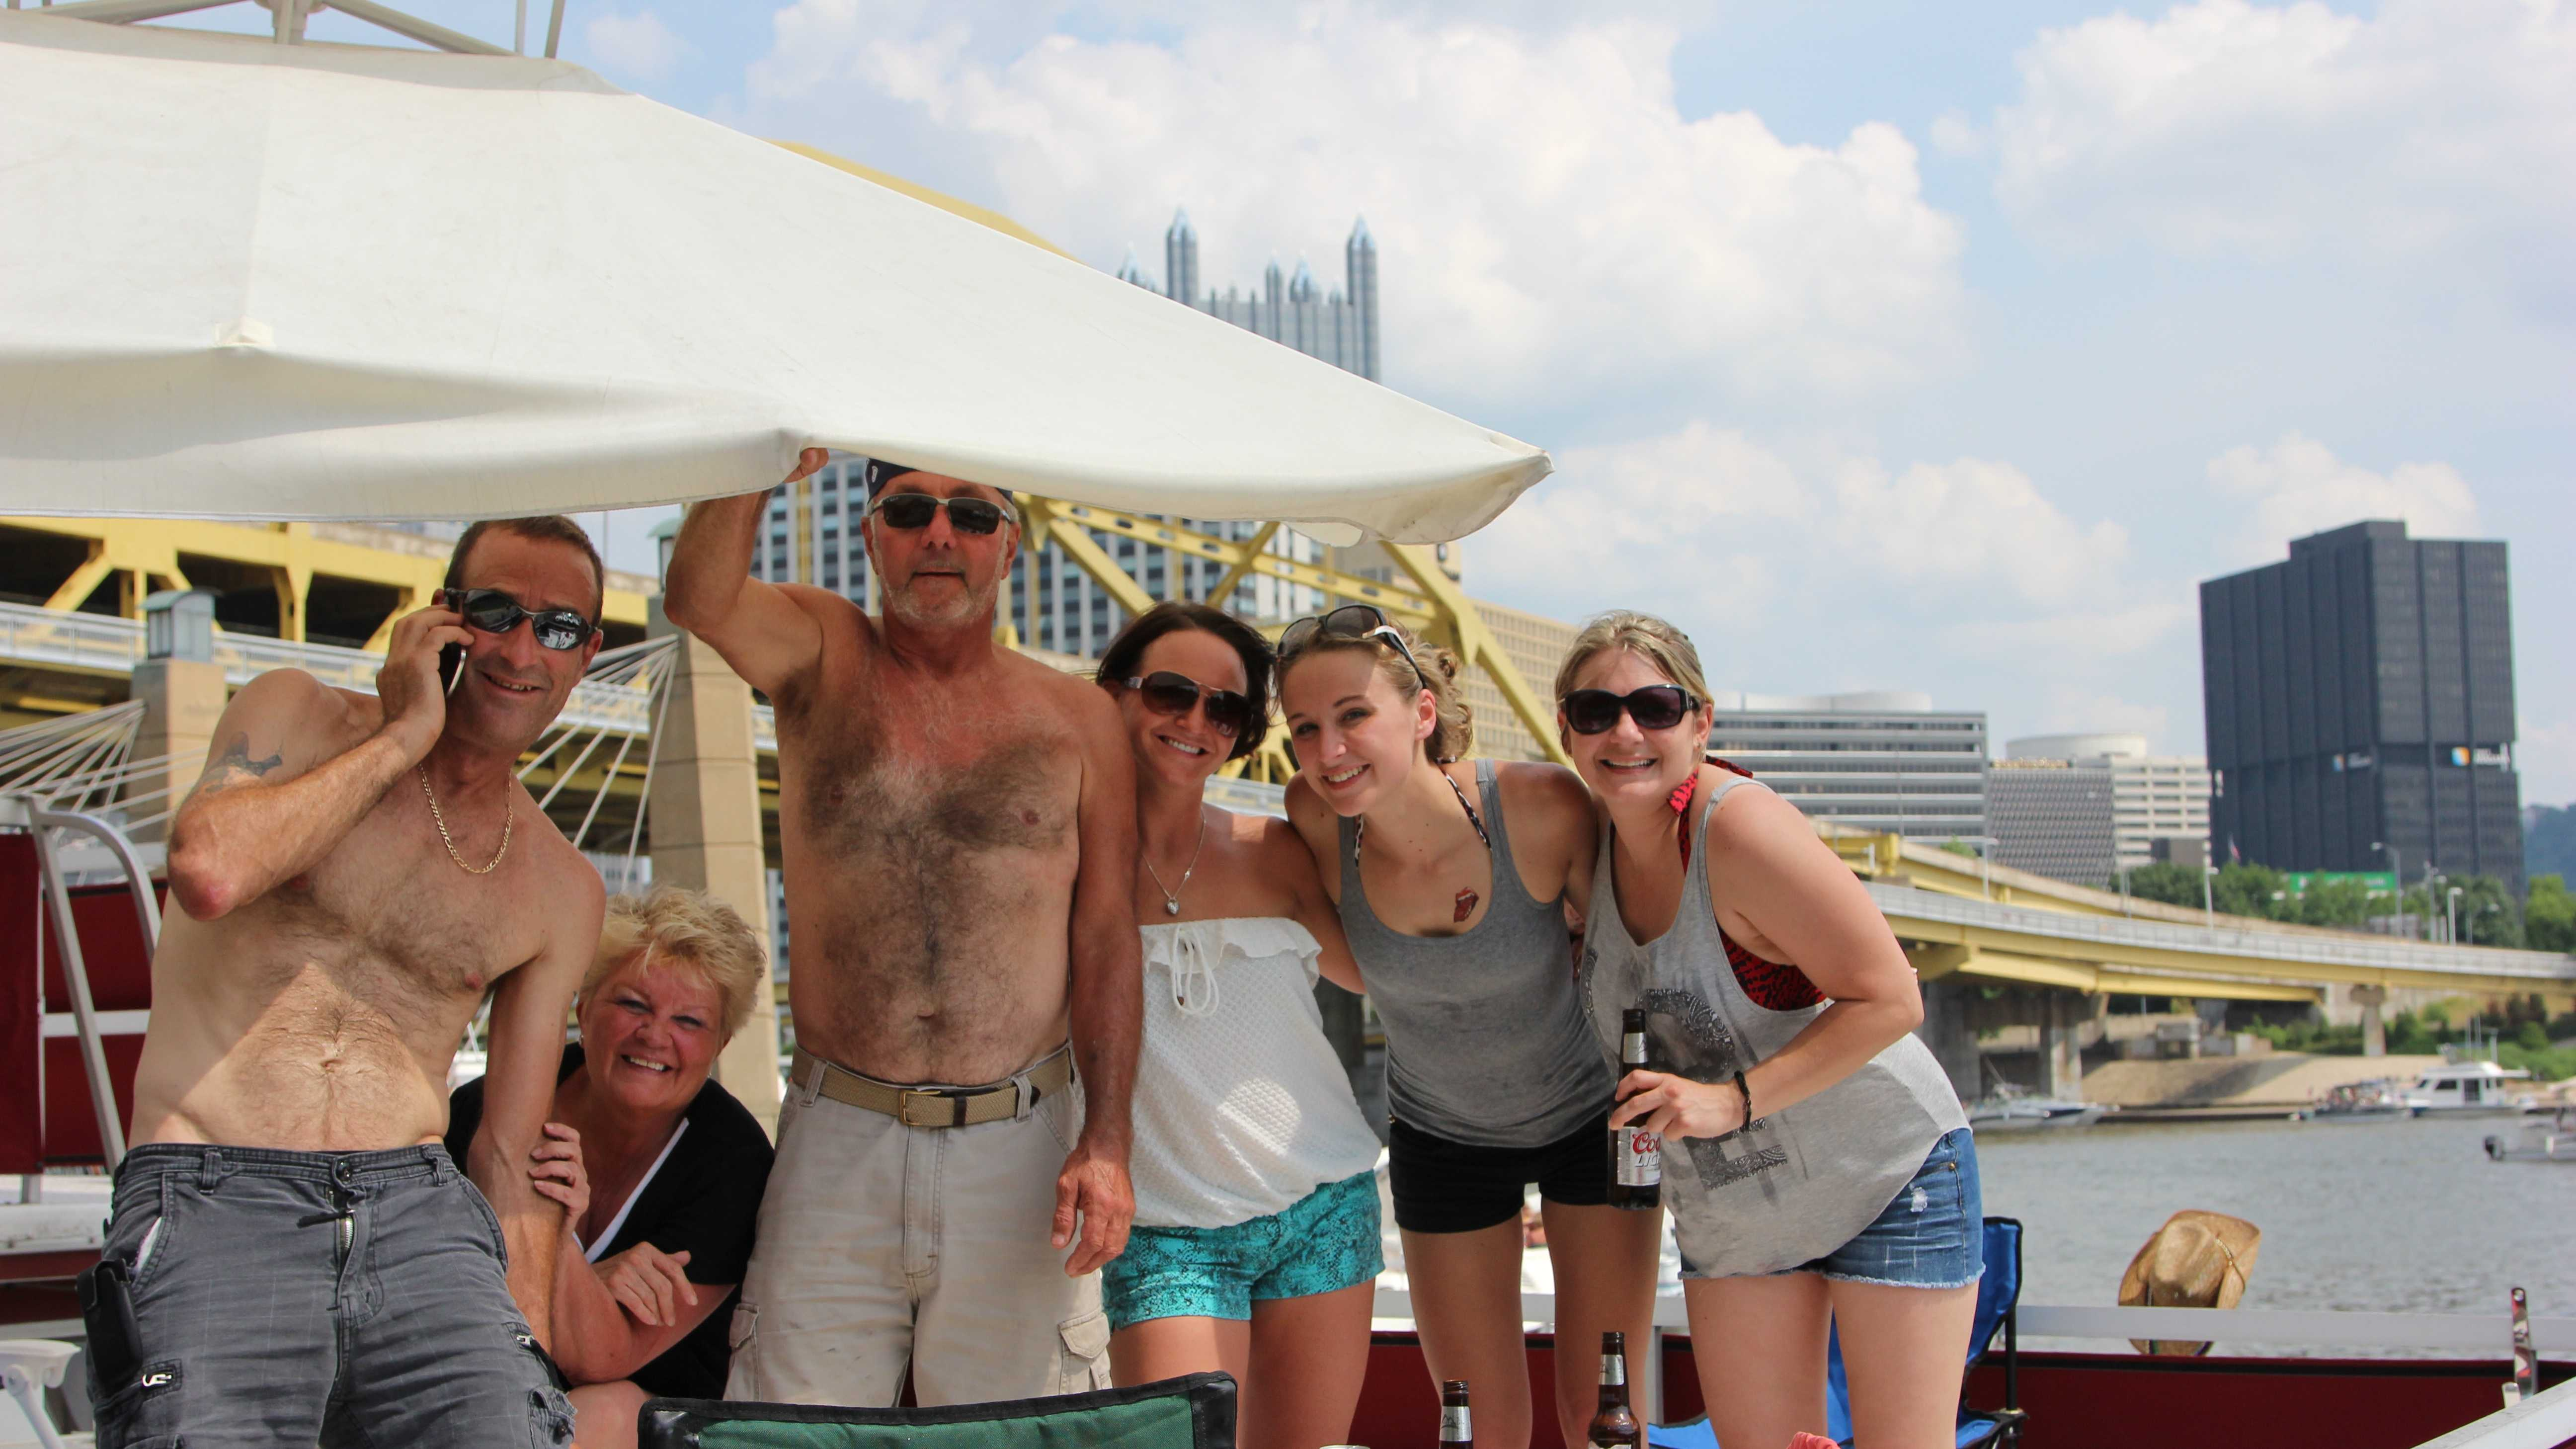 Starting Saturday morning and go well into the evening pre-concert, thousands partied along the shoreline and on the water. Check out the photos from the fun on the river...